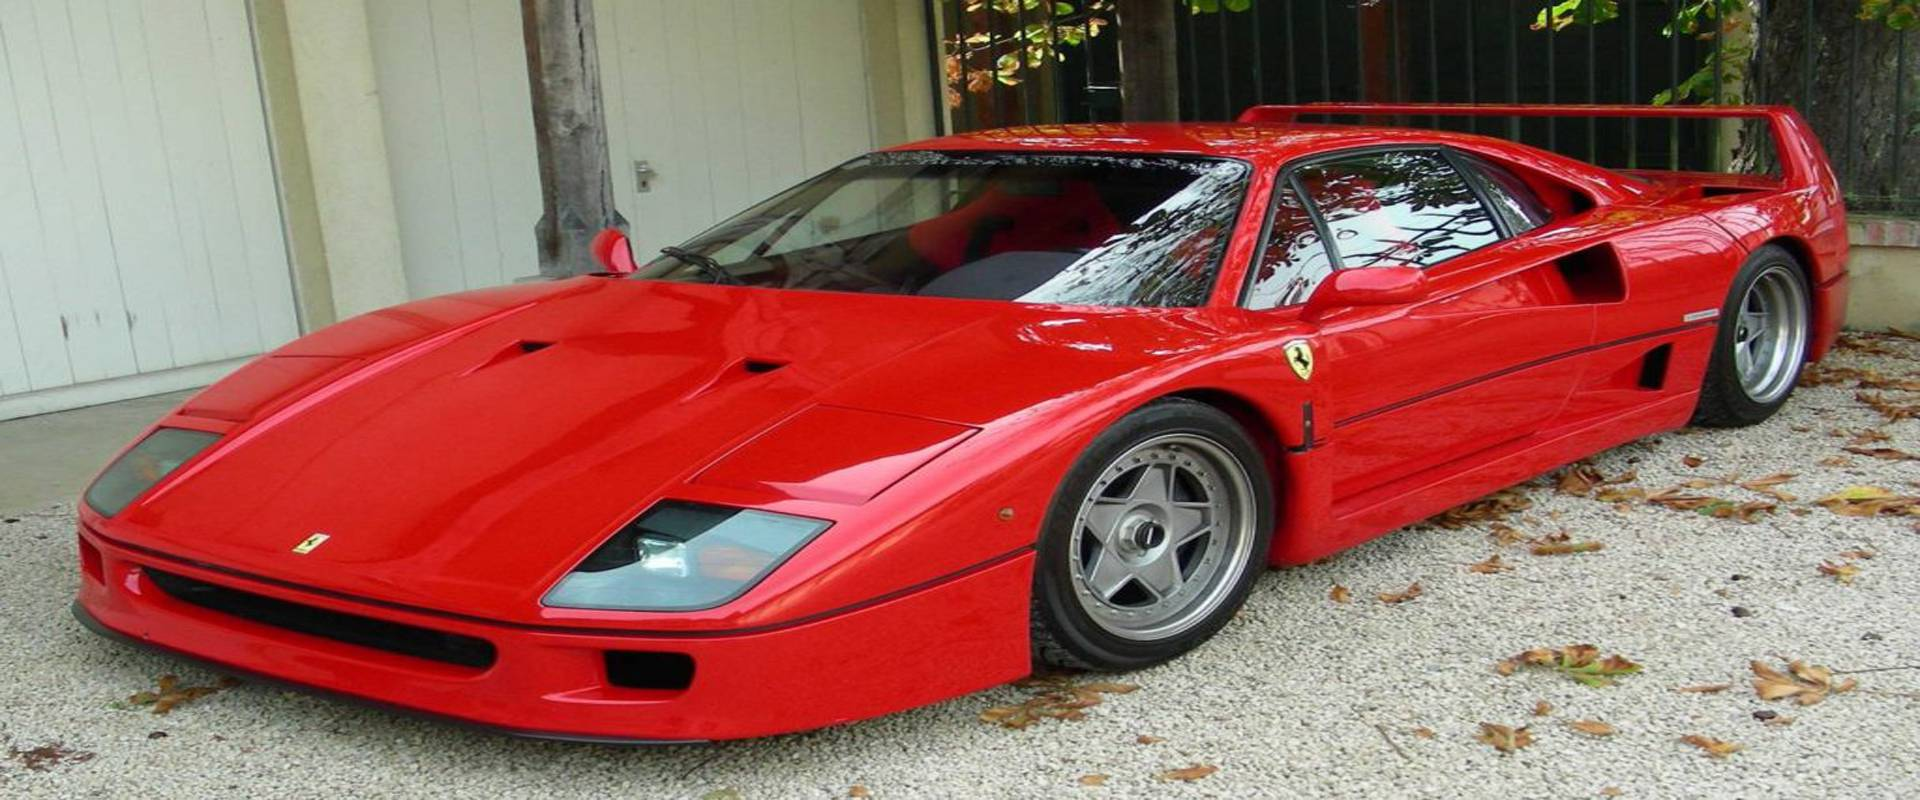 Collecting a Ferrari F40 & Driving it Across Europe